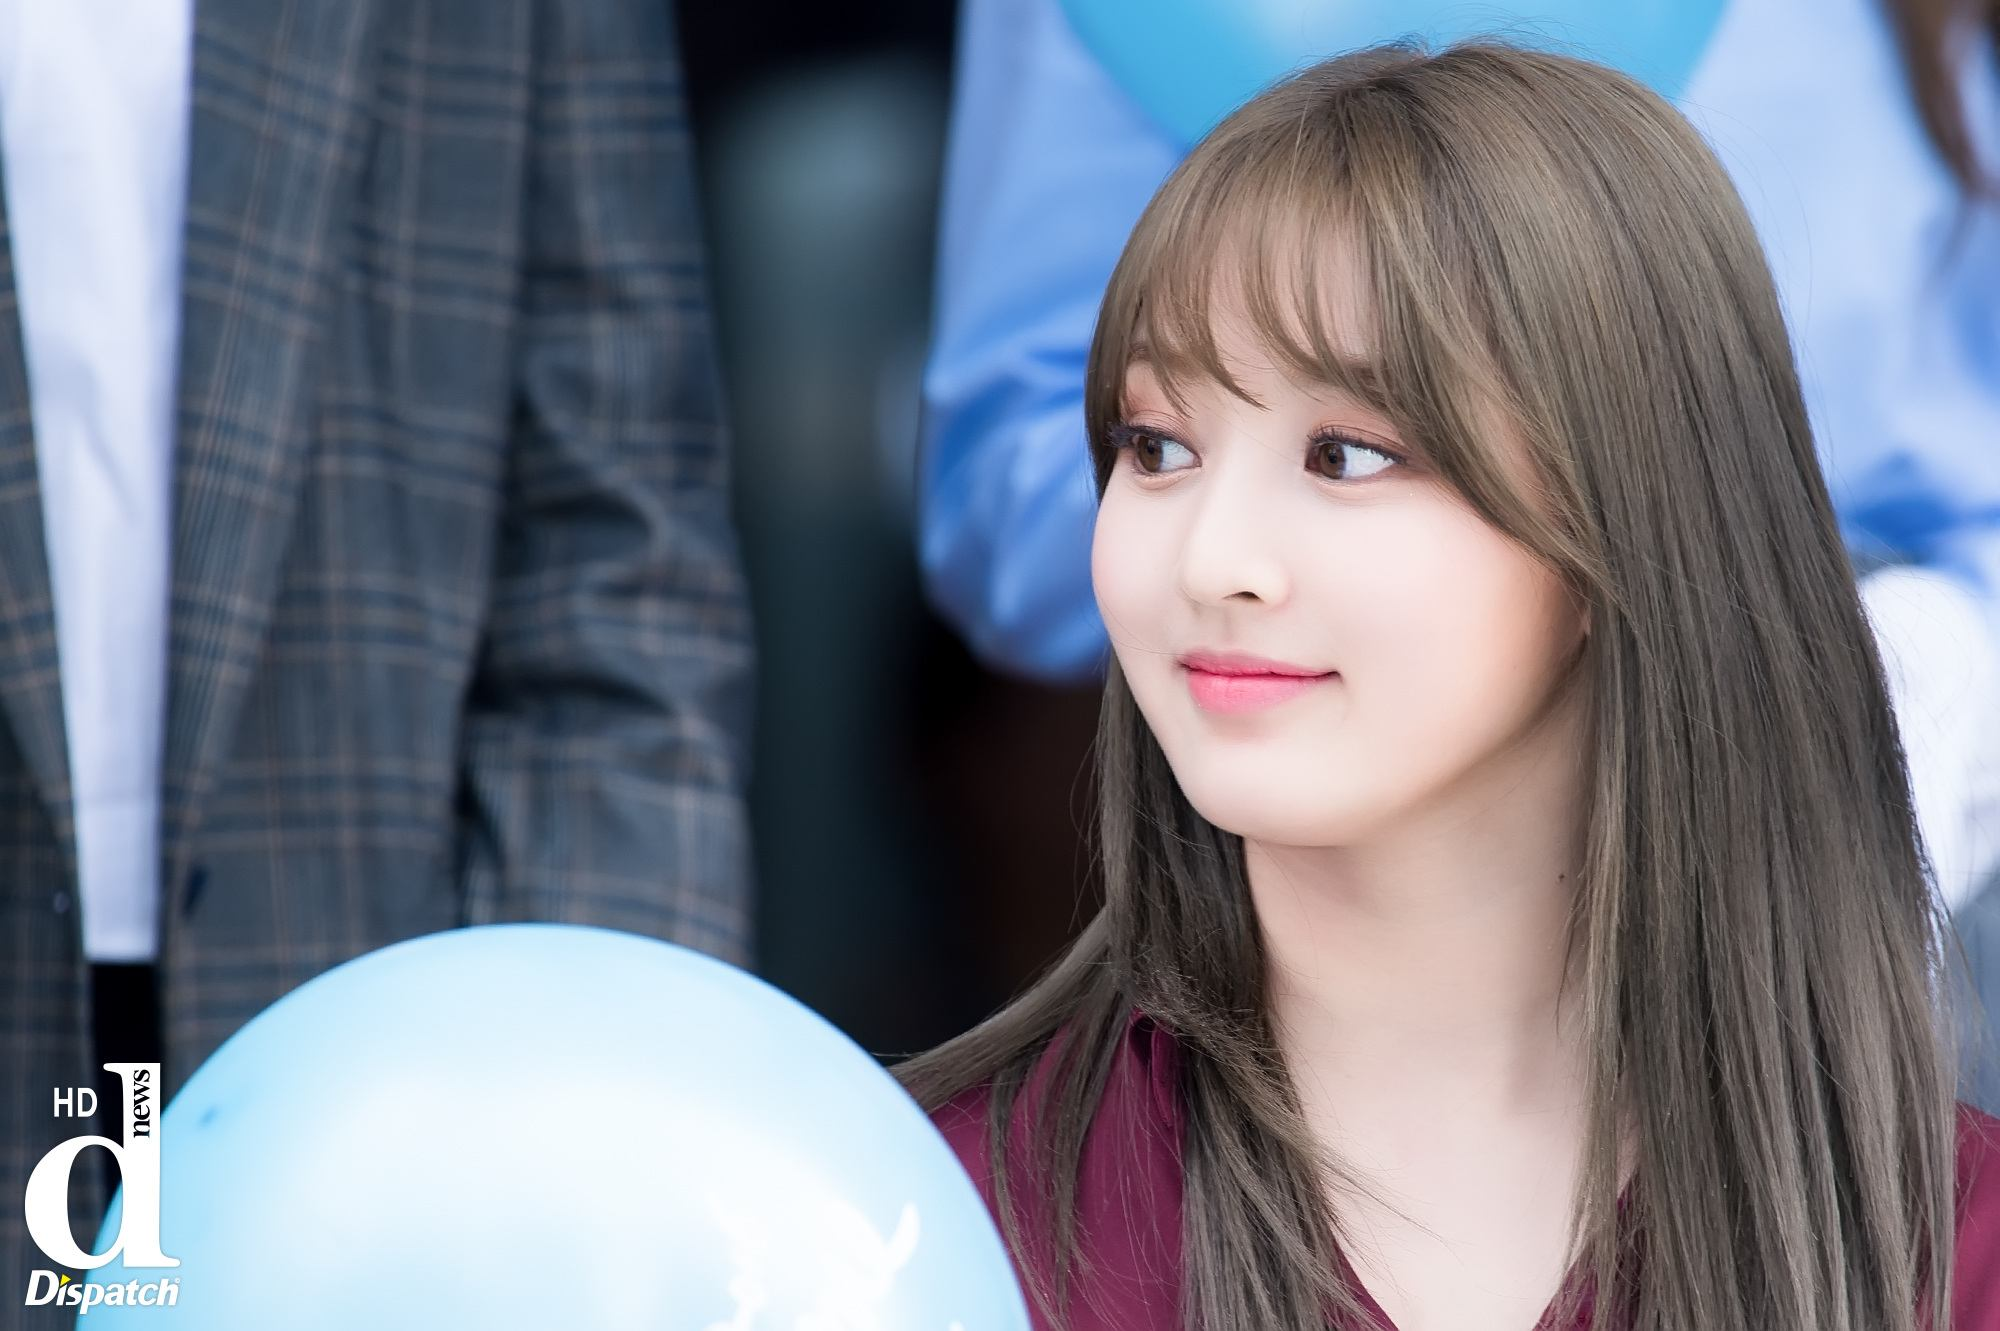 Cute Small Girl Full Hd Wallpaper Baby Pictures Of Twice Jihyo Goes Viral For Her Beauty